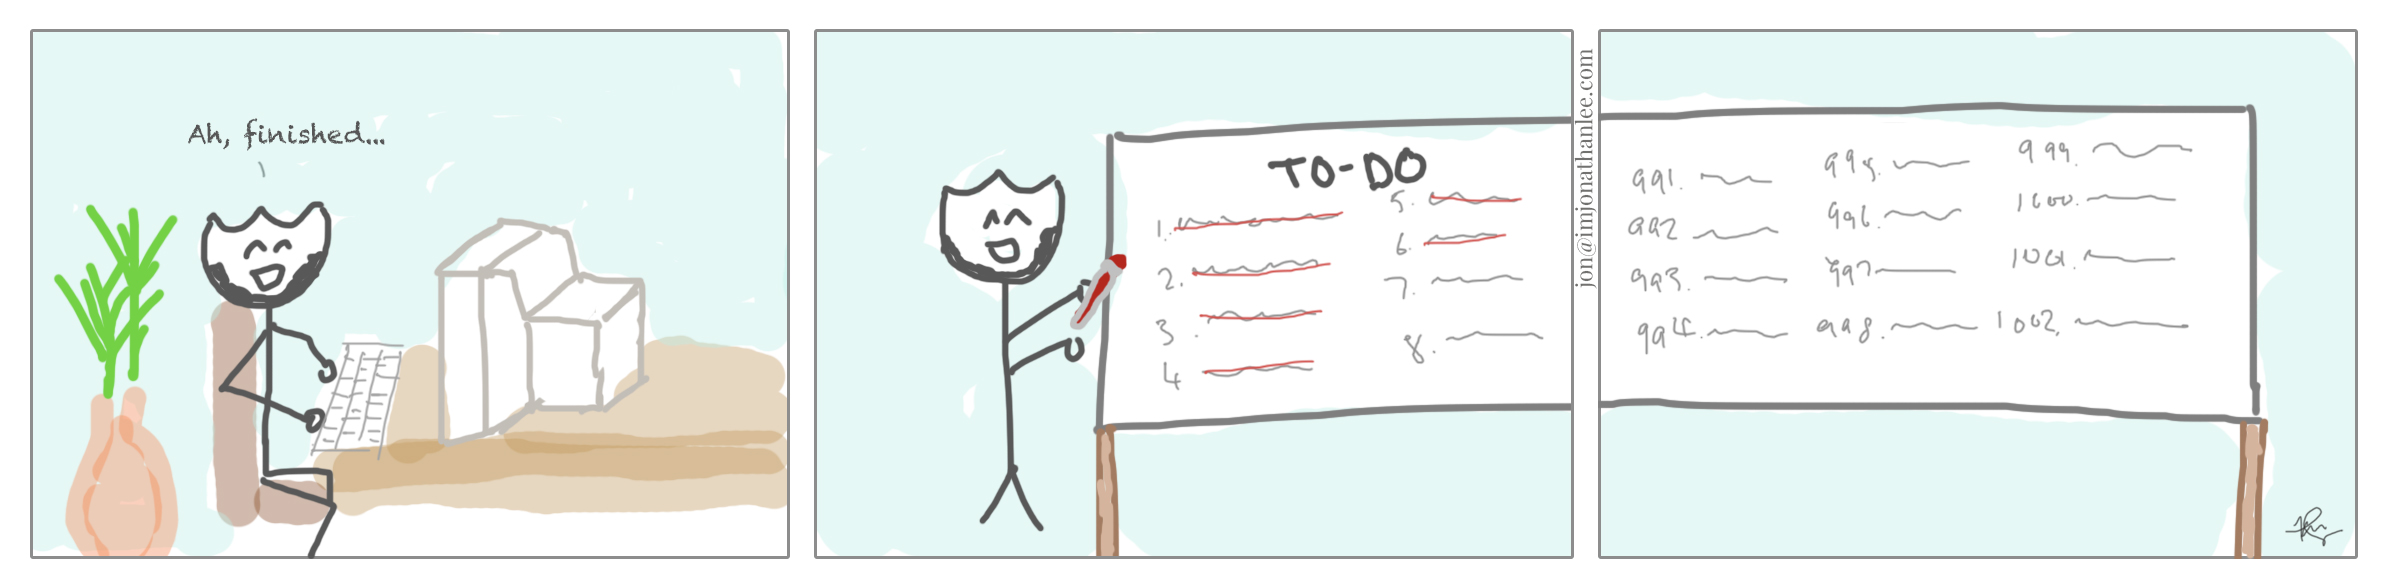 million things on to do list comics